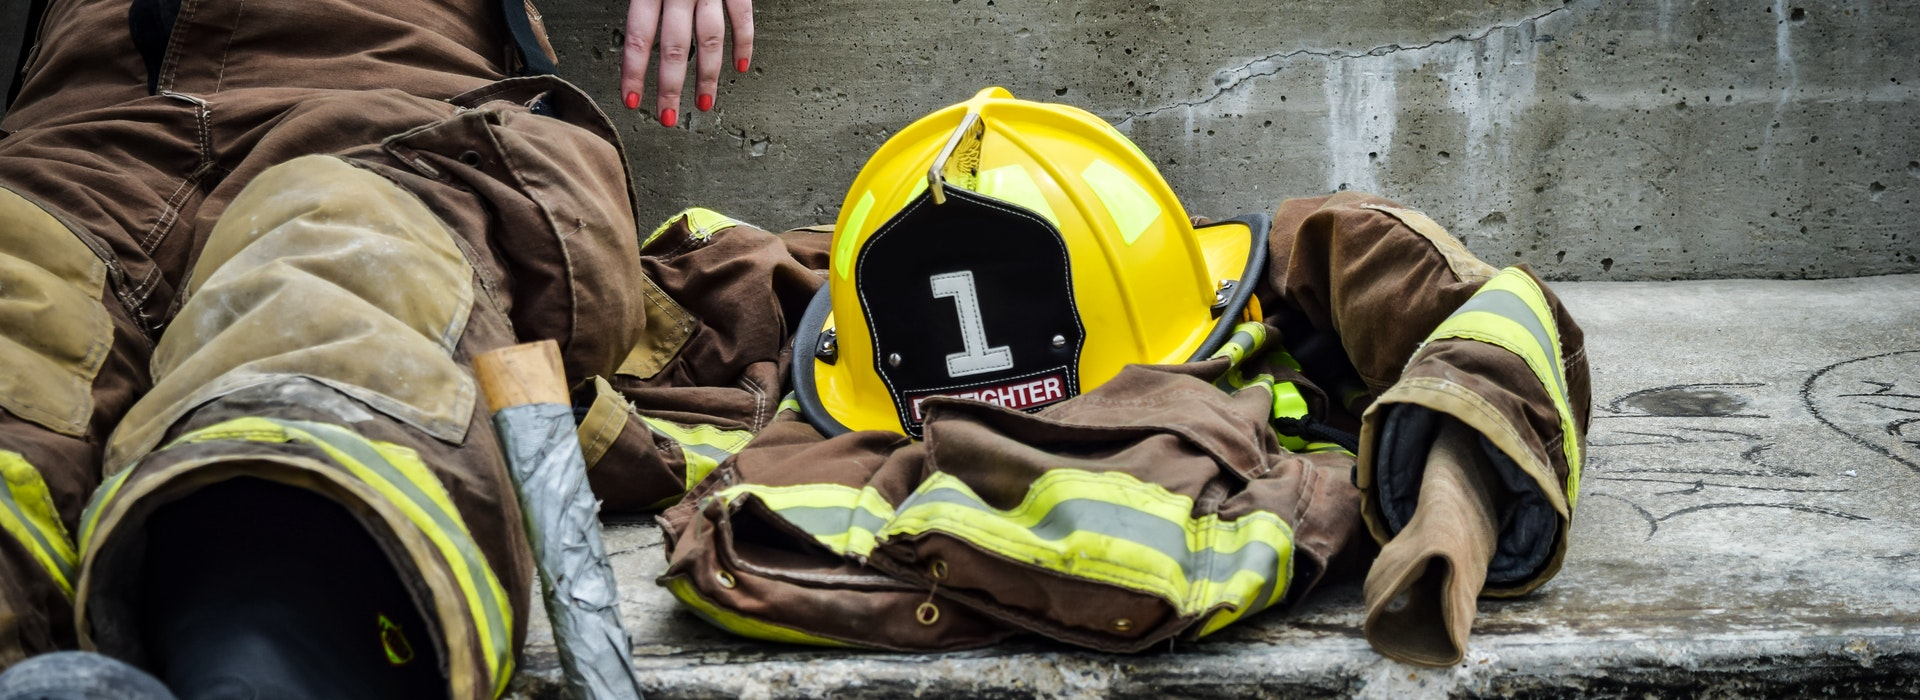 A yellow hardhat and firefighter's jacket sits next to a firefighter sitting on the ground